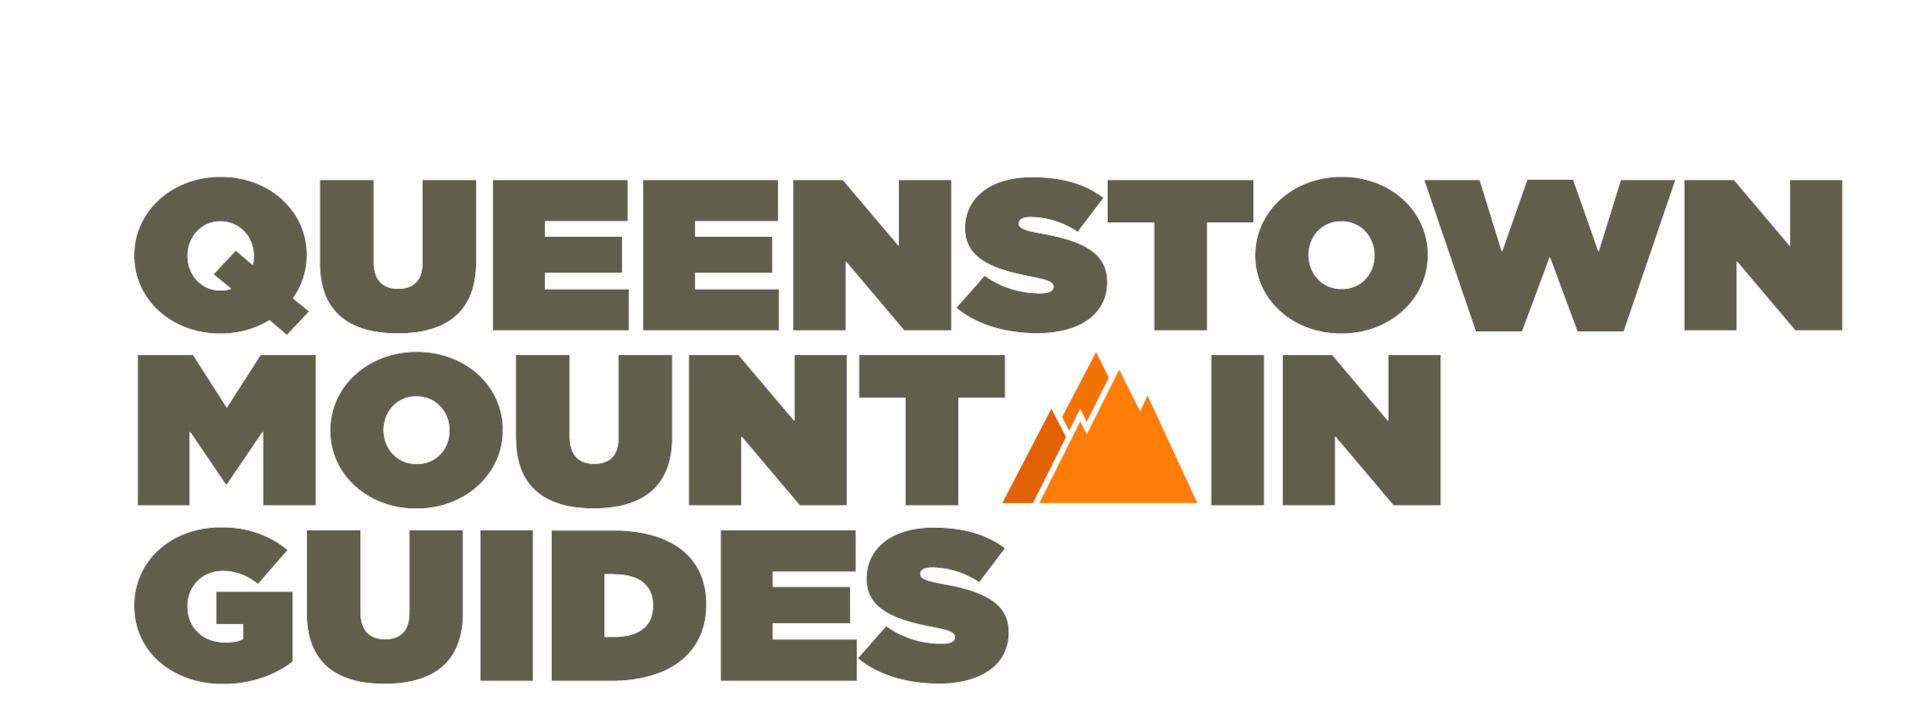 Logo: Queenstown Mountain Guides